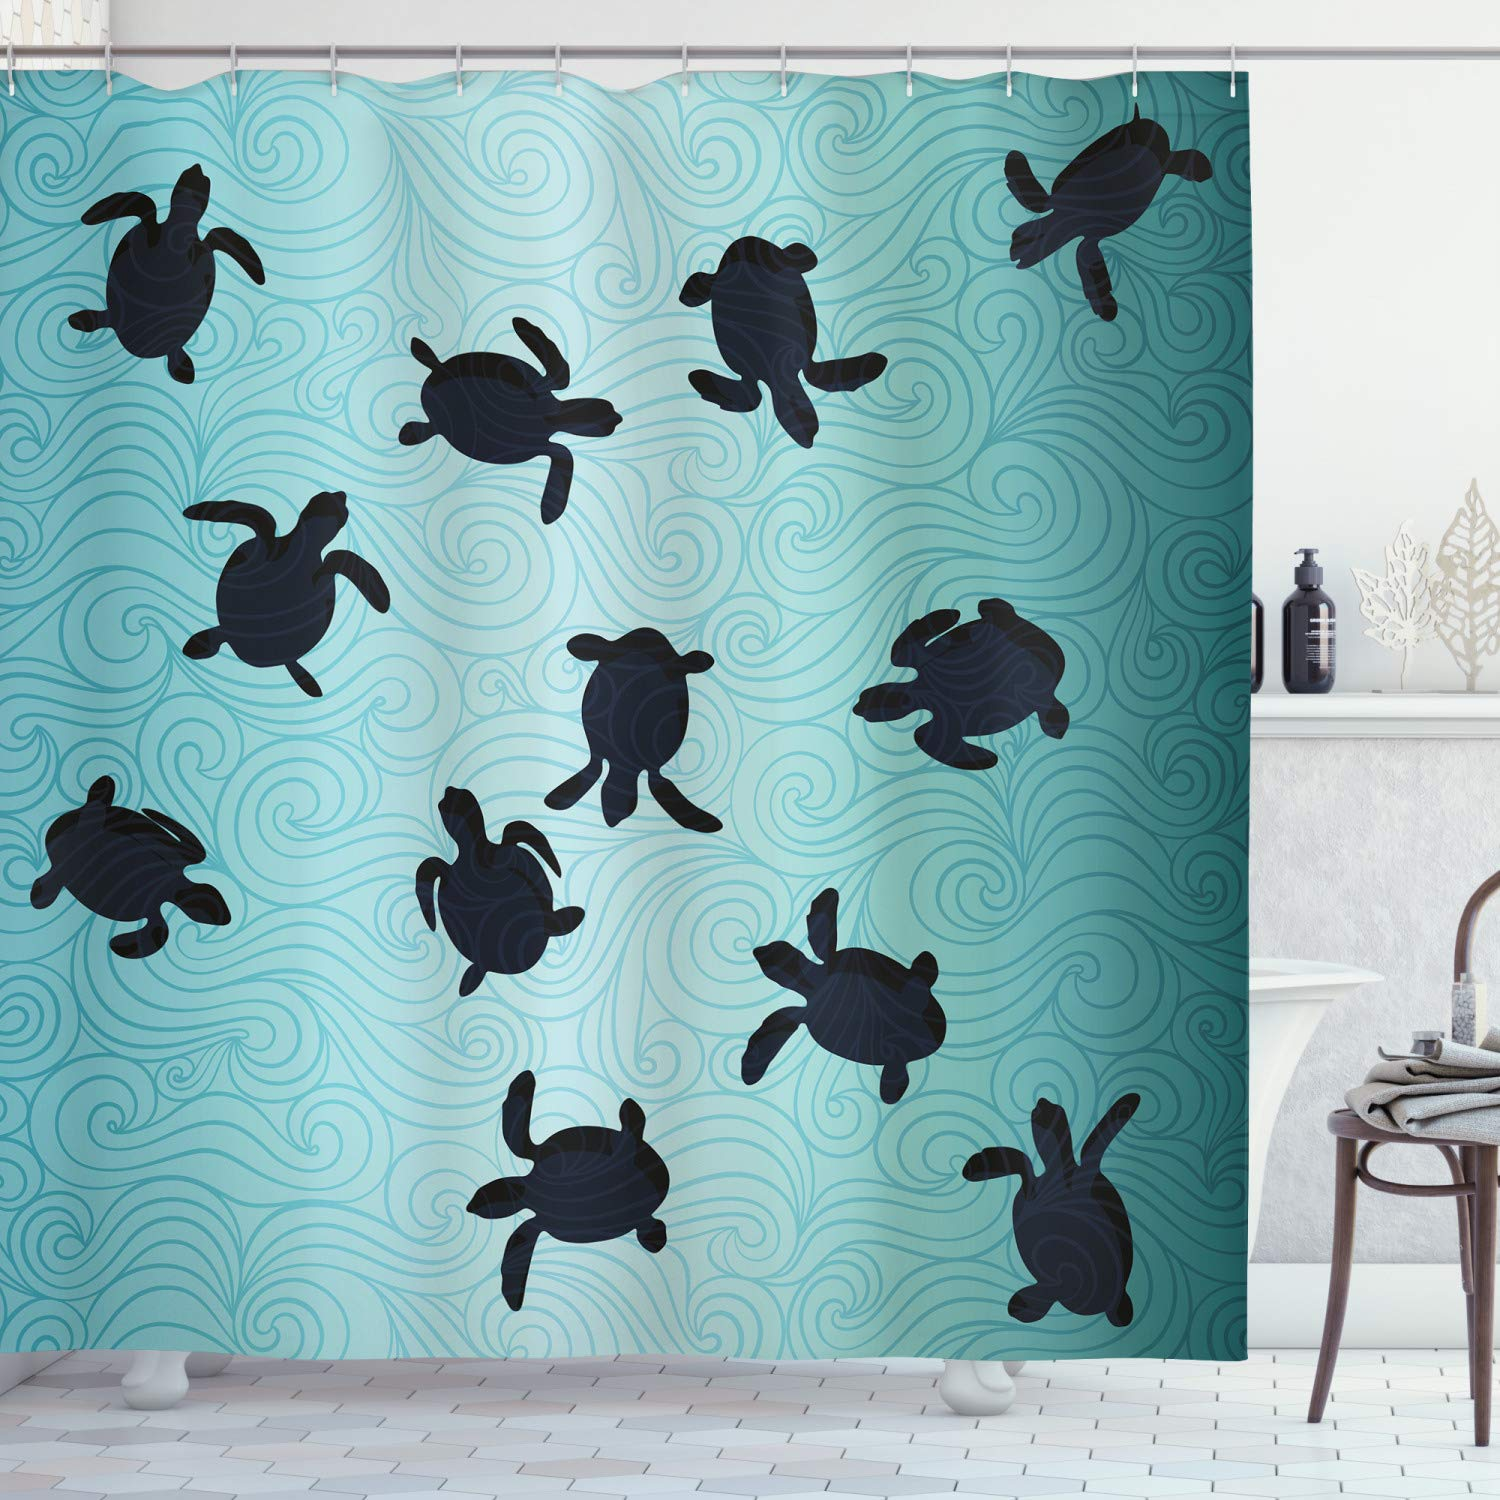 """Ambesonne Marine Shower Curtain, Baby Sea Turtles Swimming Silhouette from The Bottom of Ocean Underwater Display, Cloth Fabric Bathroom Decor Set with Hooks, 75"""" Long, Teal Blue"""